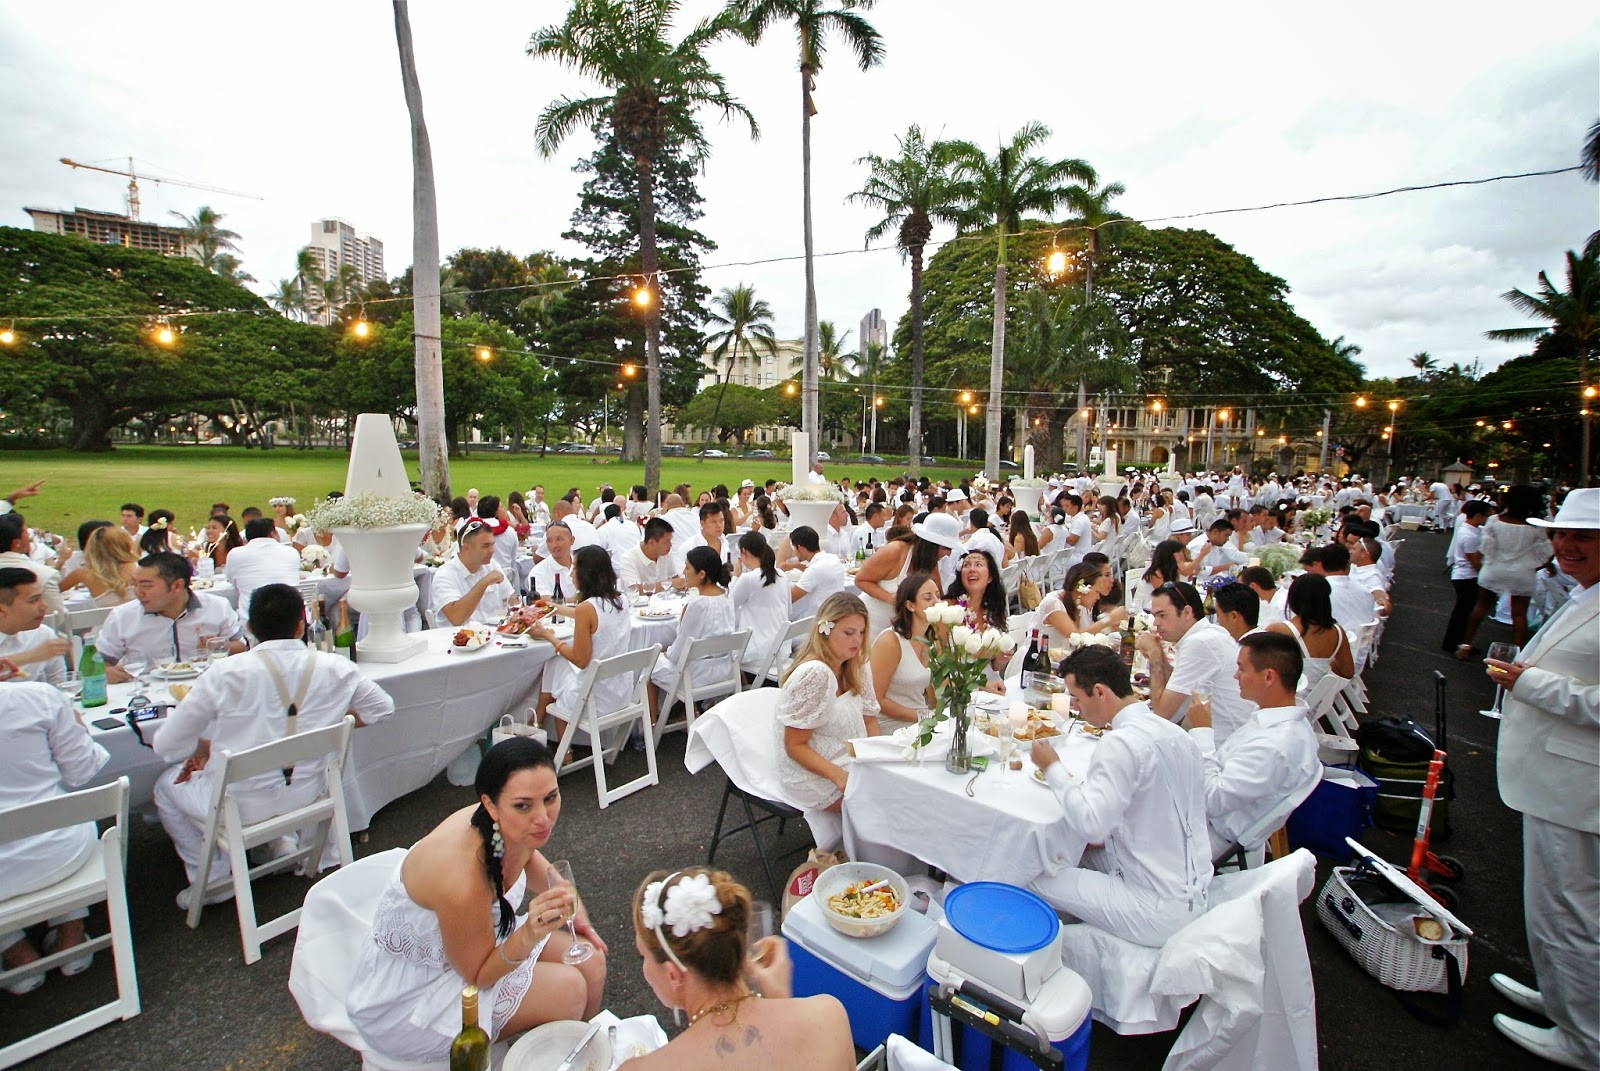 Iolani Palace served as the backdrop for Hawaii's inaugural Diner en Blanc.